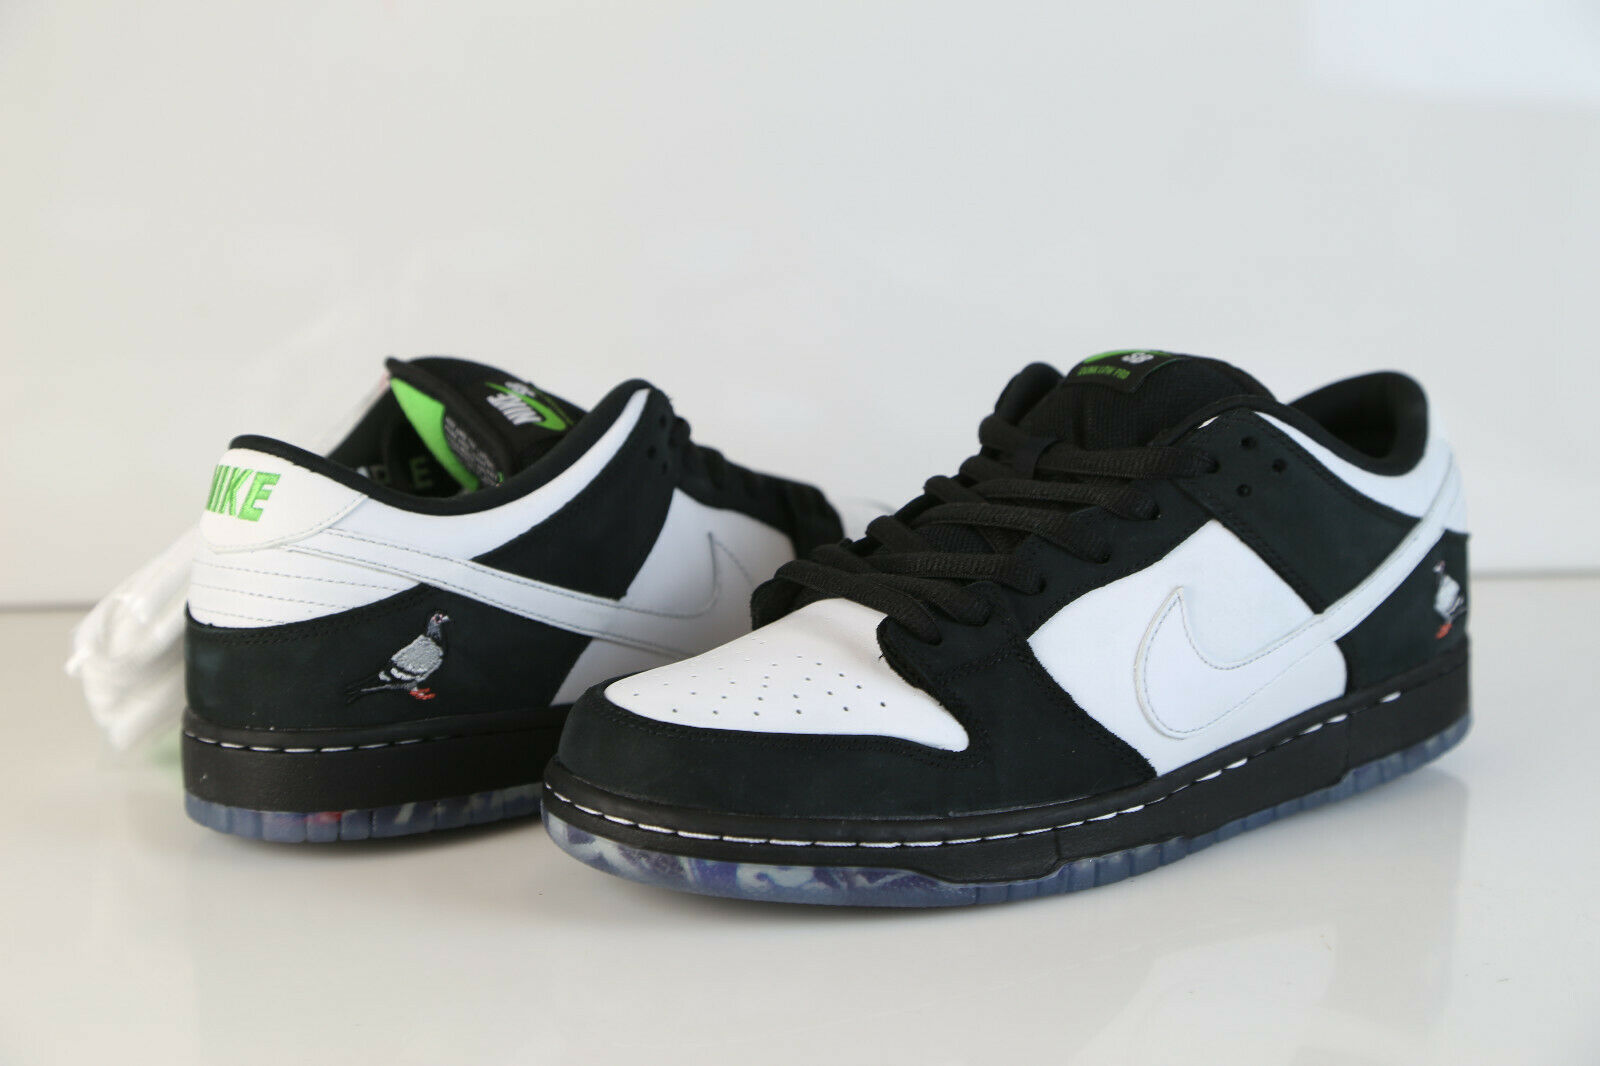 Nike Dunk Low SB Pro OG QS Staple Panda Black White BV1310-013 8-13